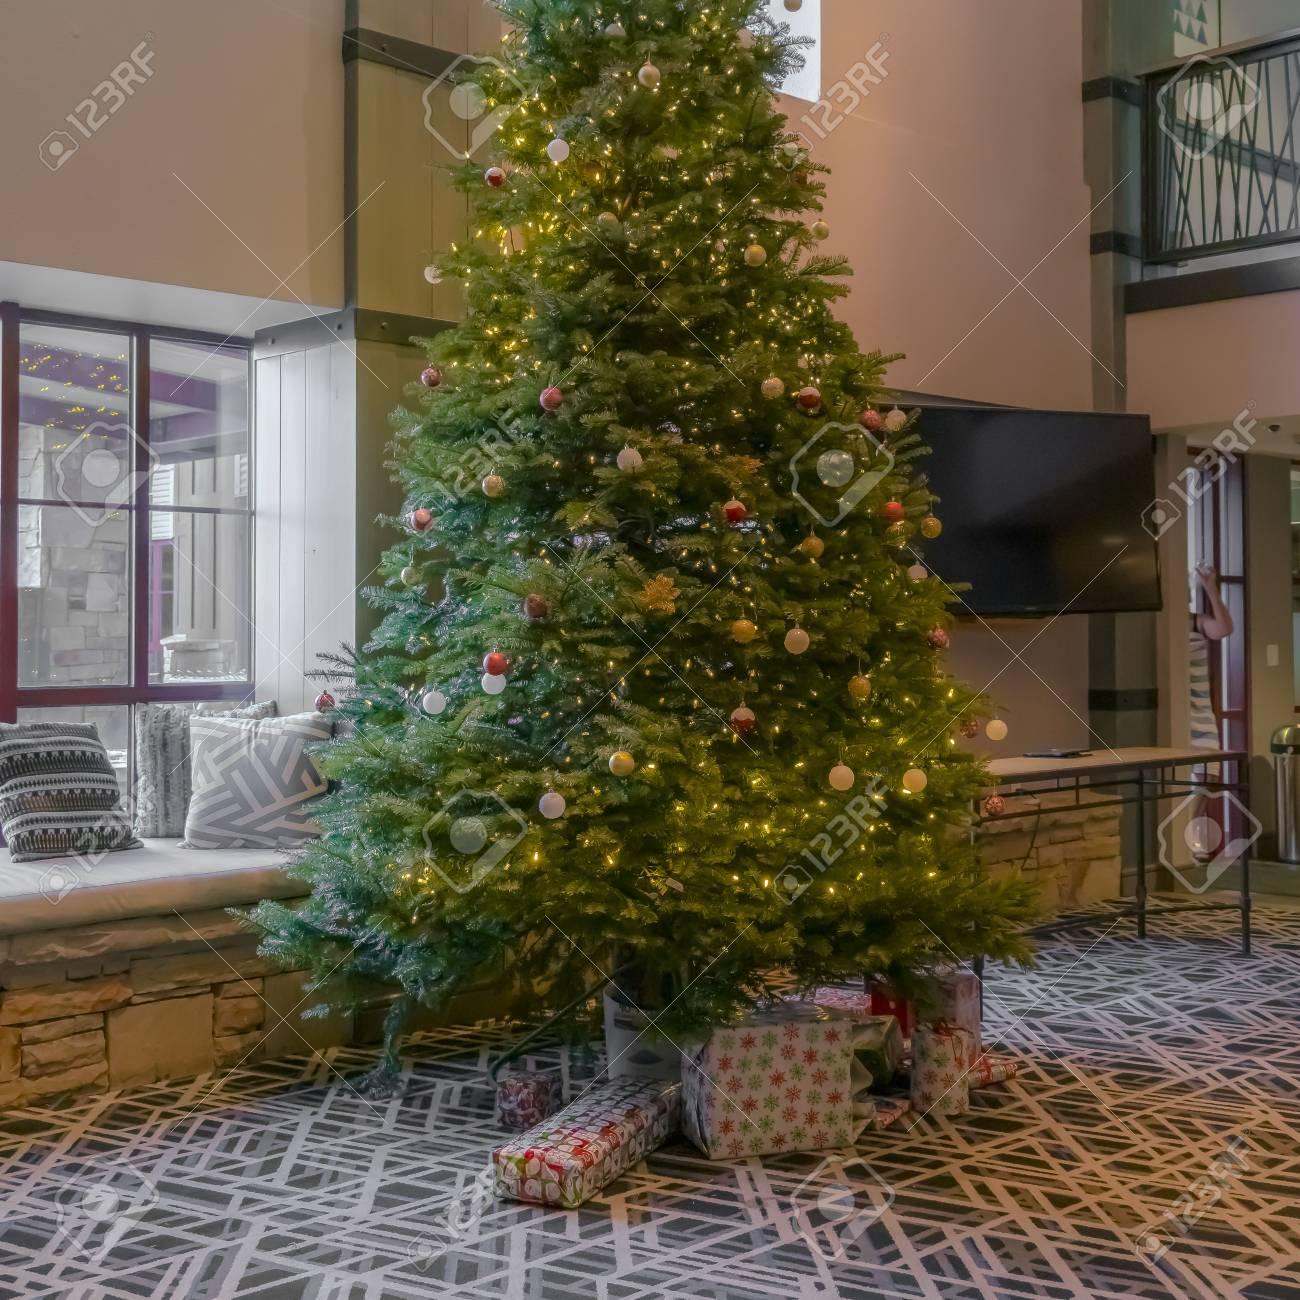 Traditional Christmas Tree.Square Traditional Christmas Tree Decorated With Baubles Lights